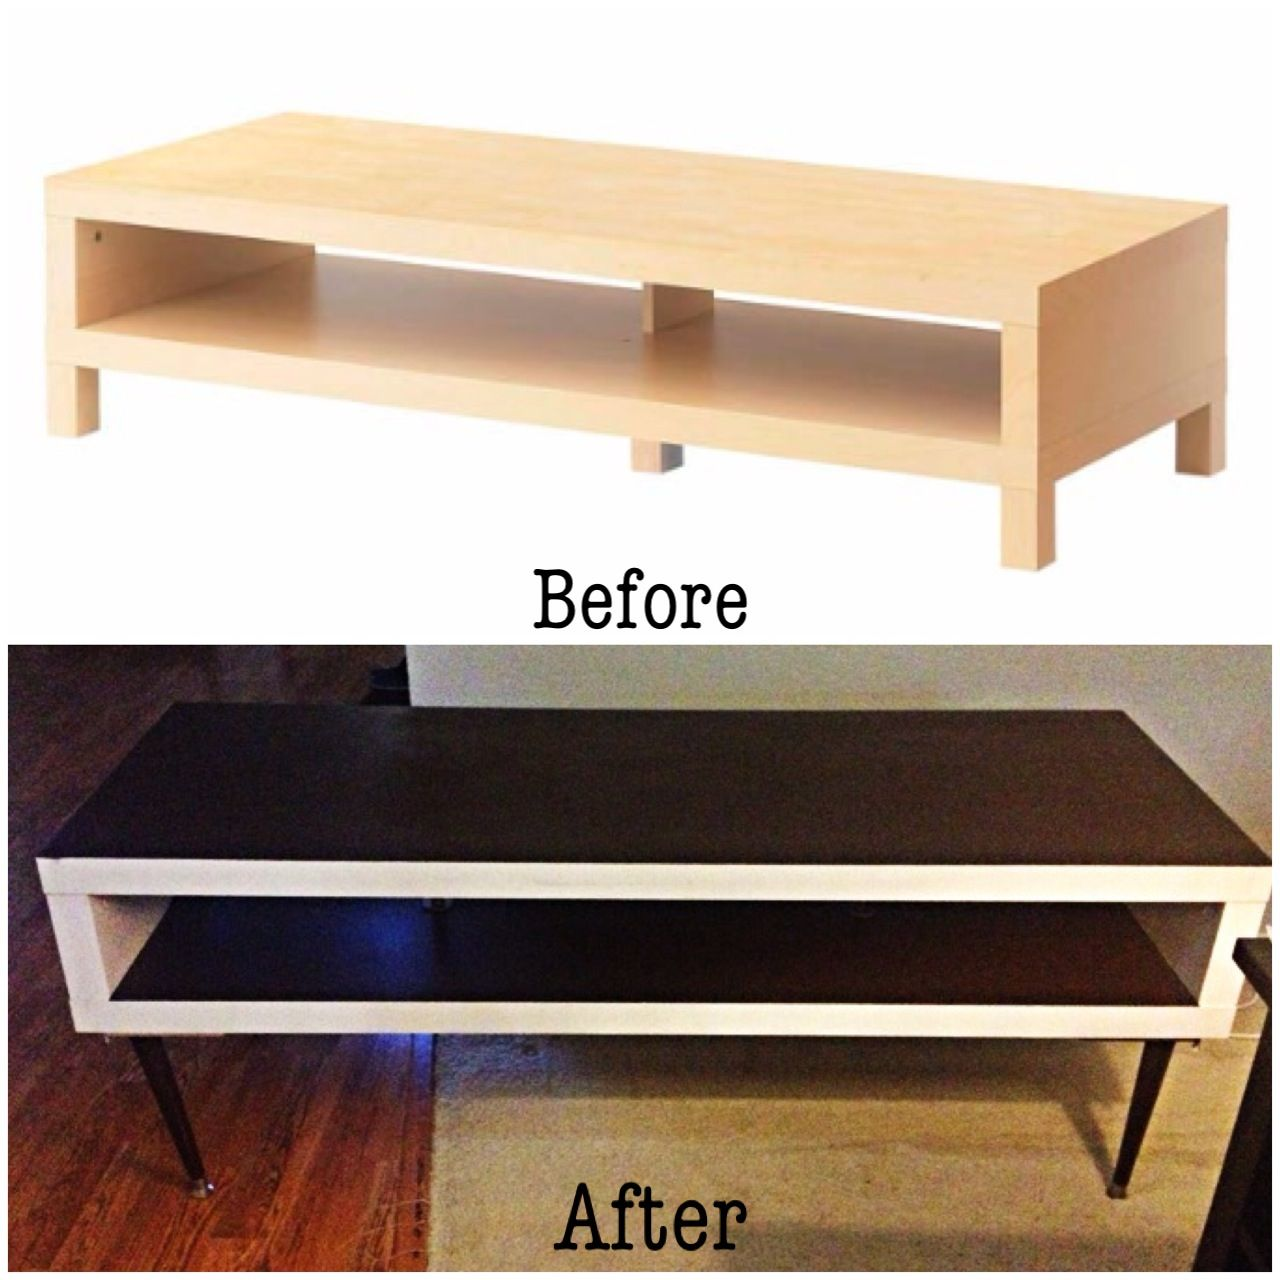 diy ikea hack! lack tv stand to mid century inspired | humble abode